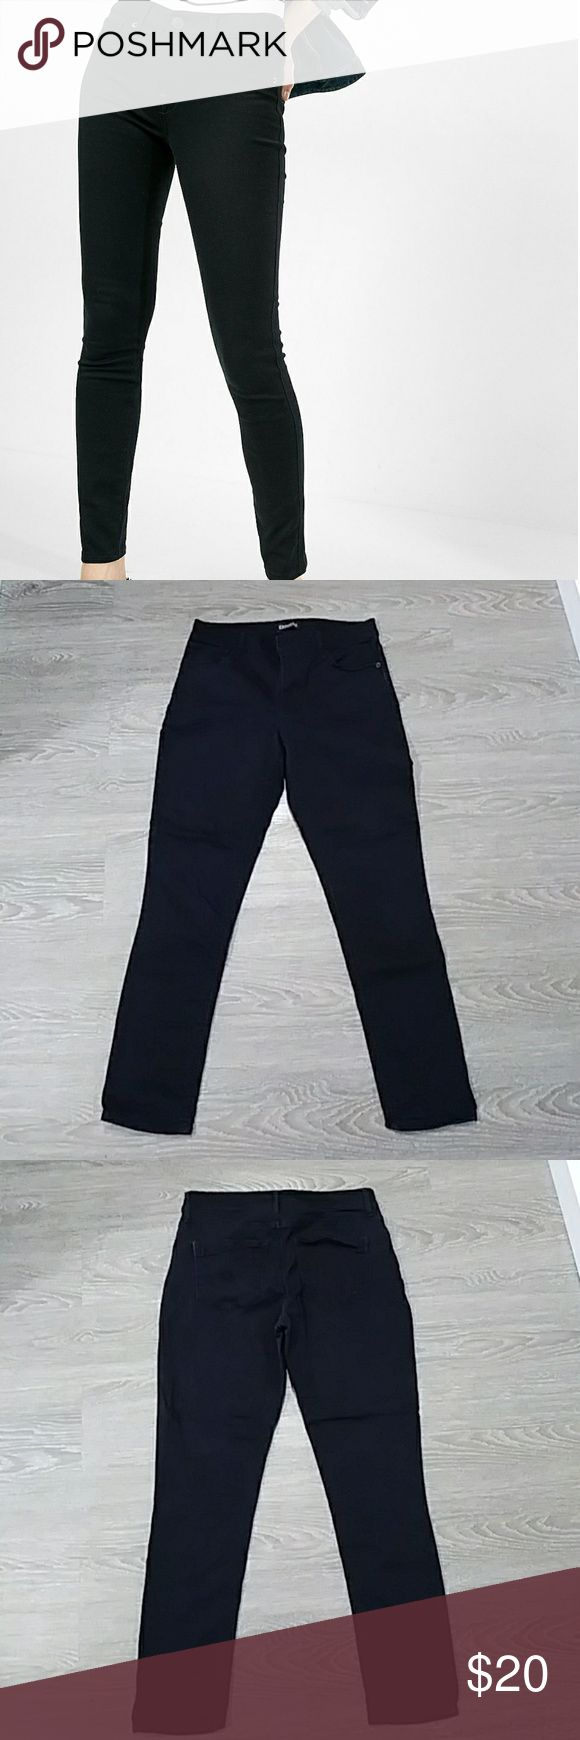 "Express mid rise ankle length legging jean 25"" inseam, slight fading, good condition Express Jeans Ankle & Cropped"